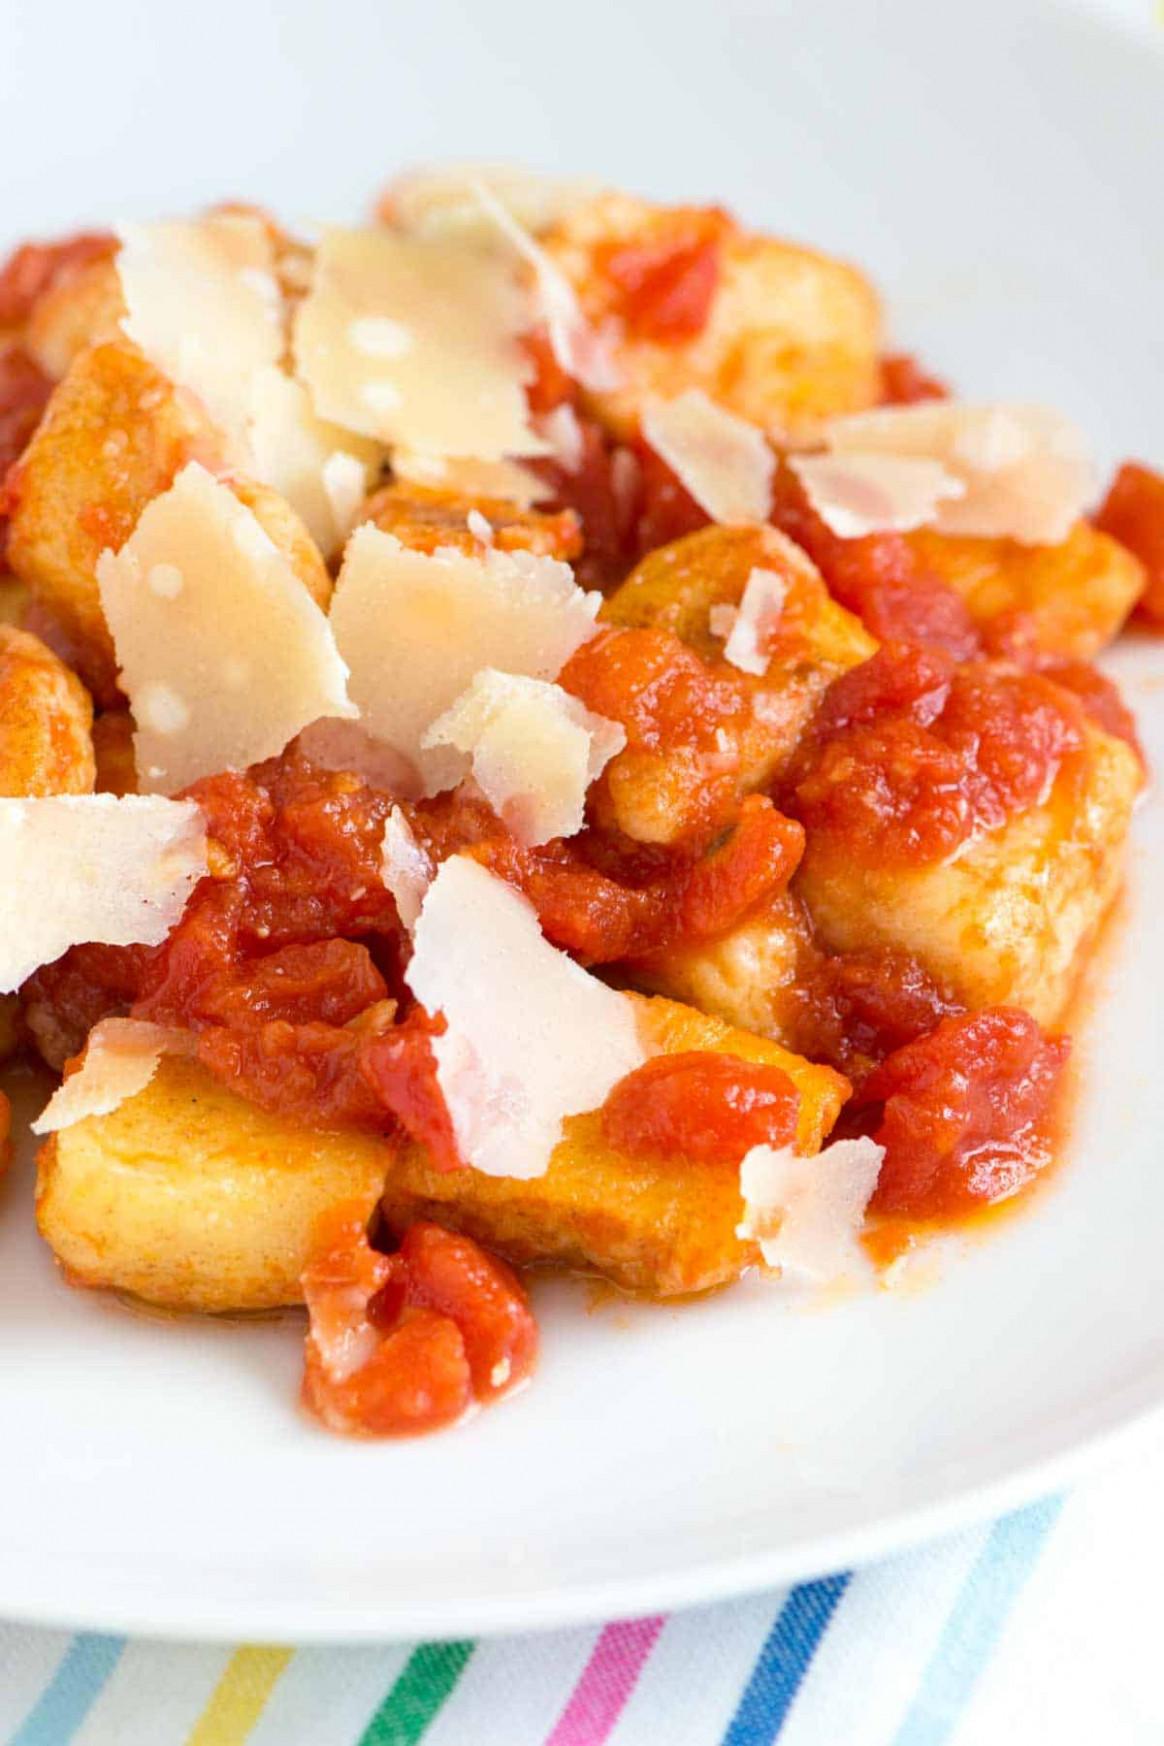 Easy Ricotta Gnocchi Recipe from Scratch